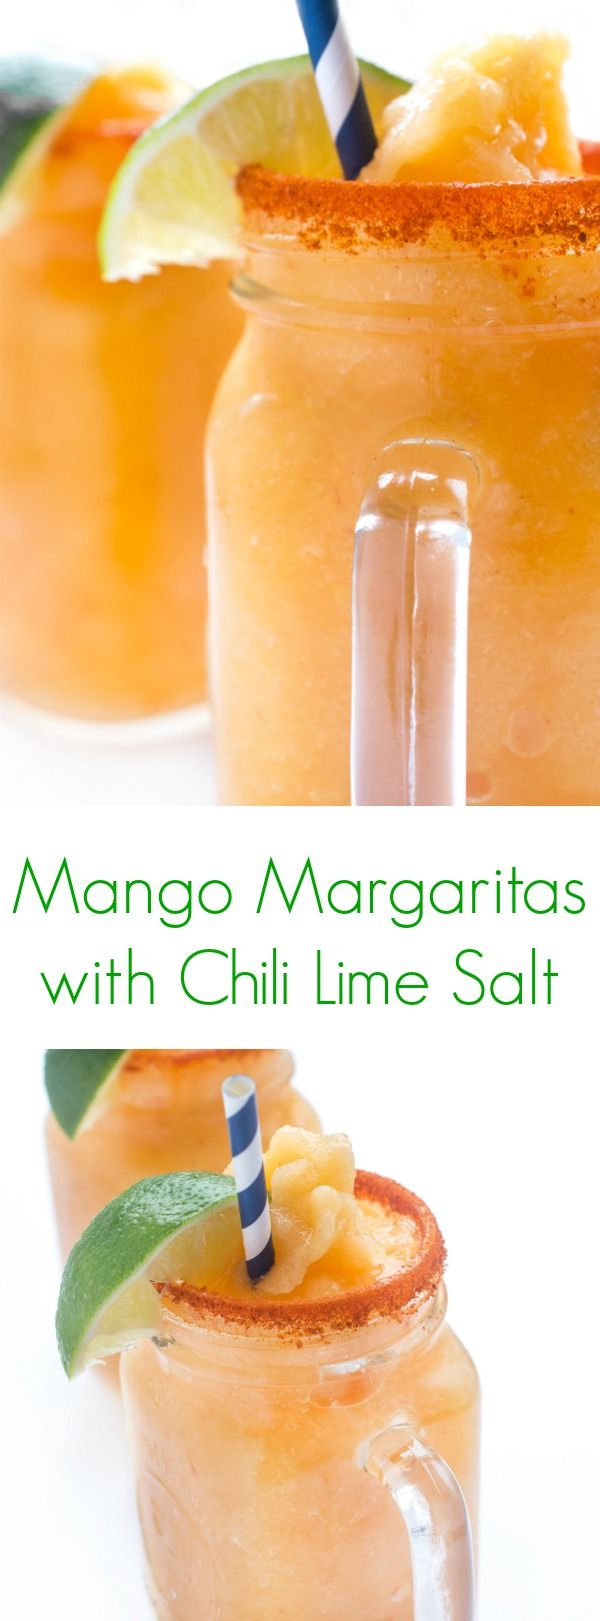 Sweet and tangy frozen mango margaritas are served with a chili lime salt rimmed glass for a spicy kick. Every sip is sweet, sour, spicy and salty!